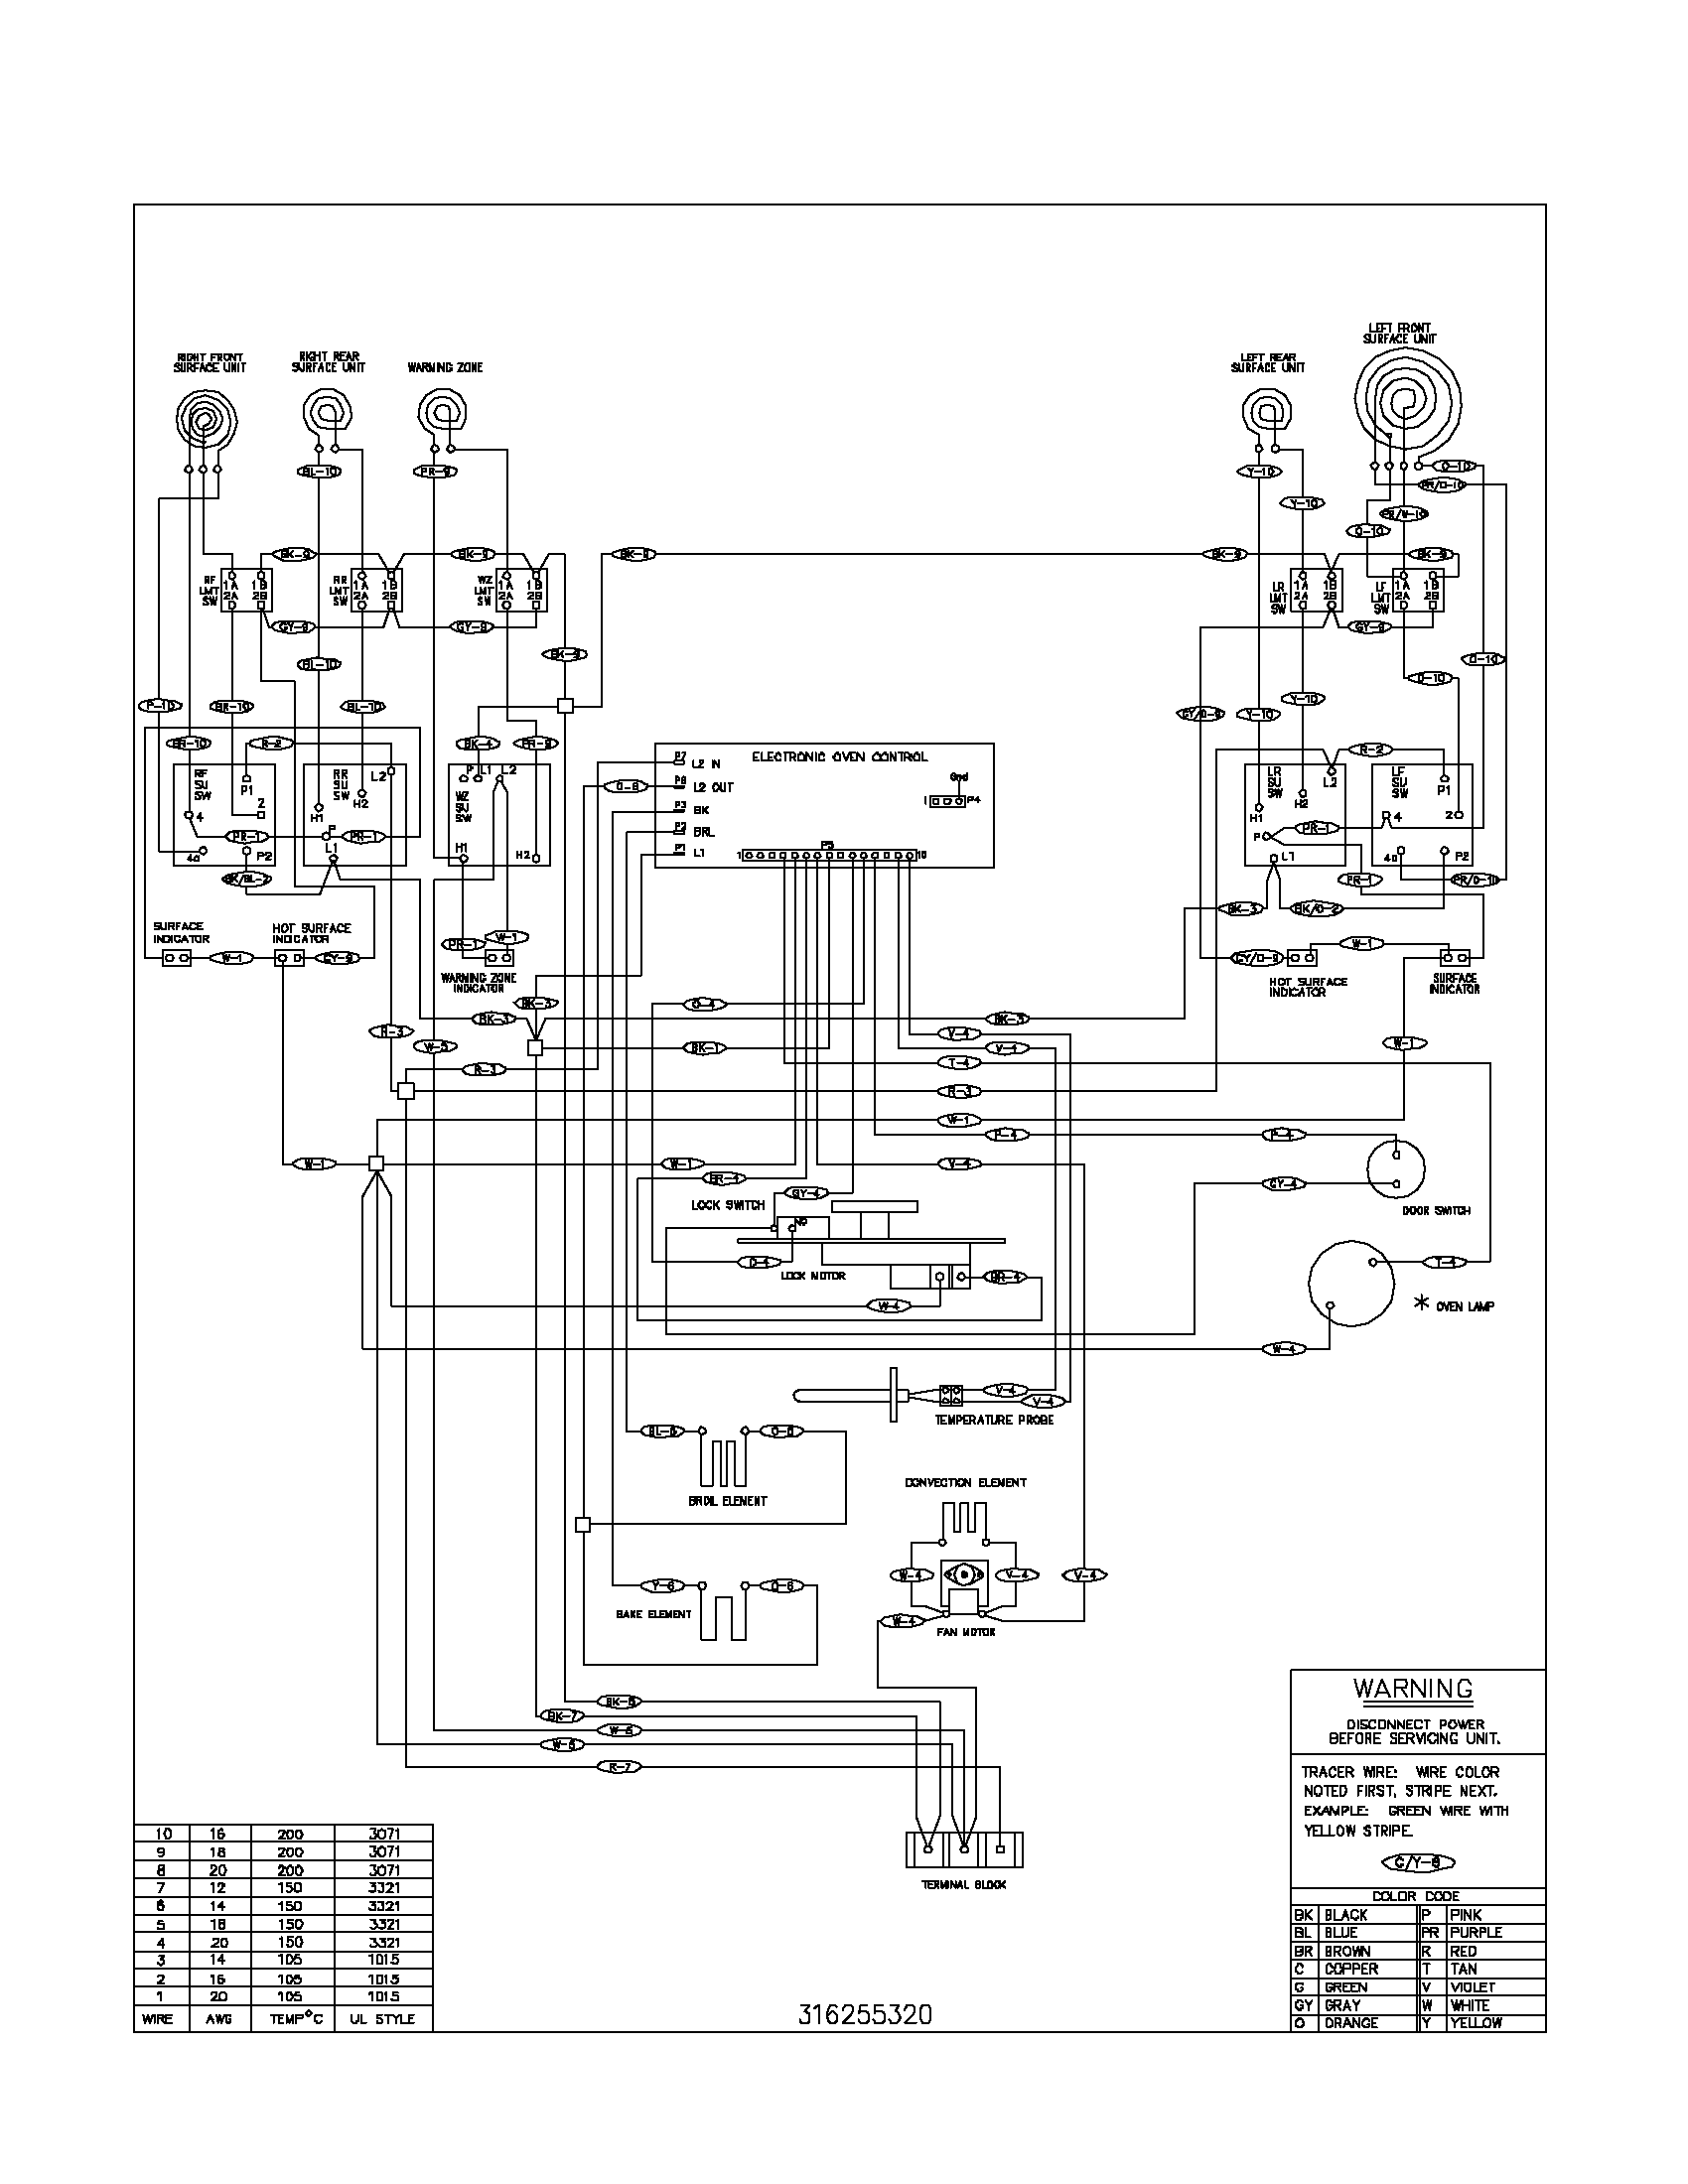 Ge Water Heater Wiring Diagram - Wiring Diagram & Cable ... on